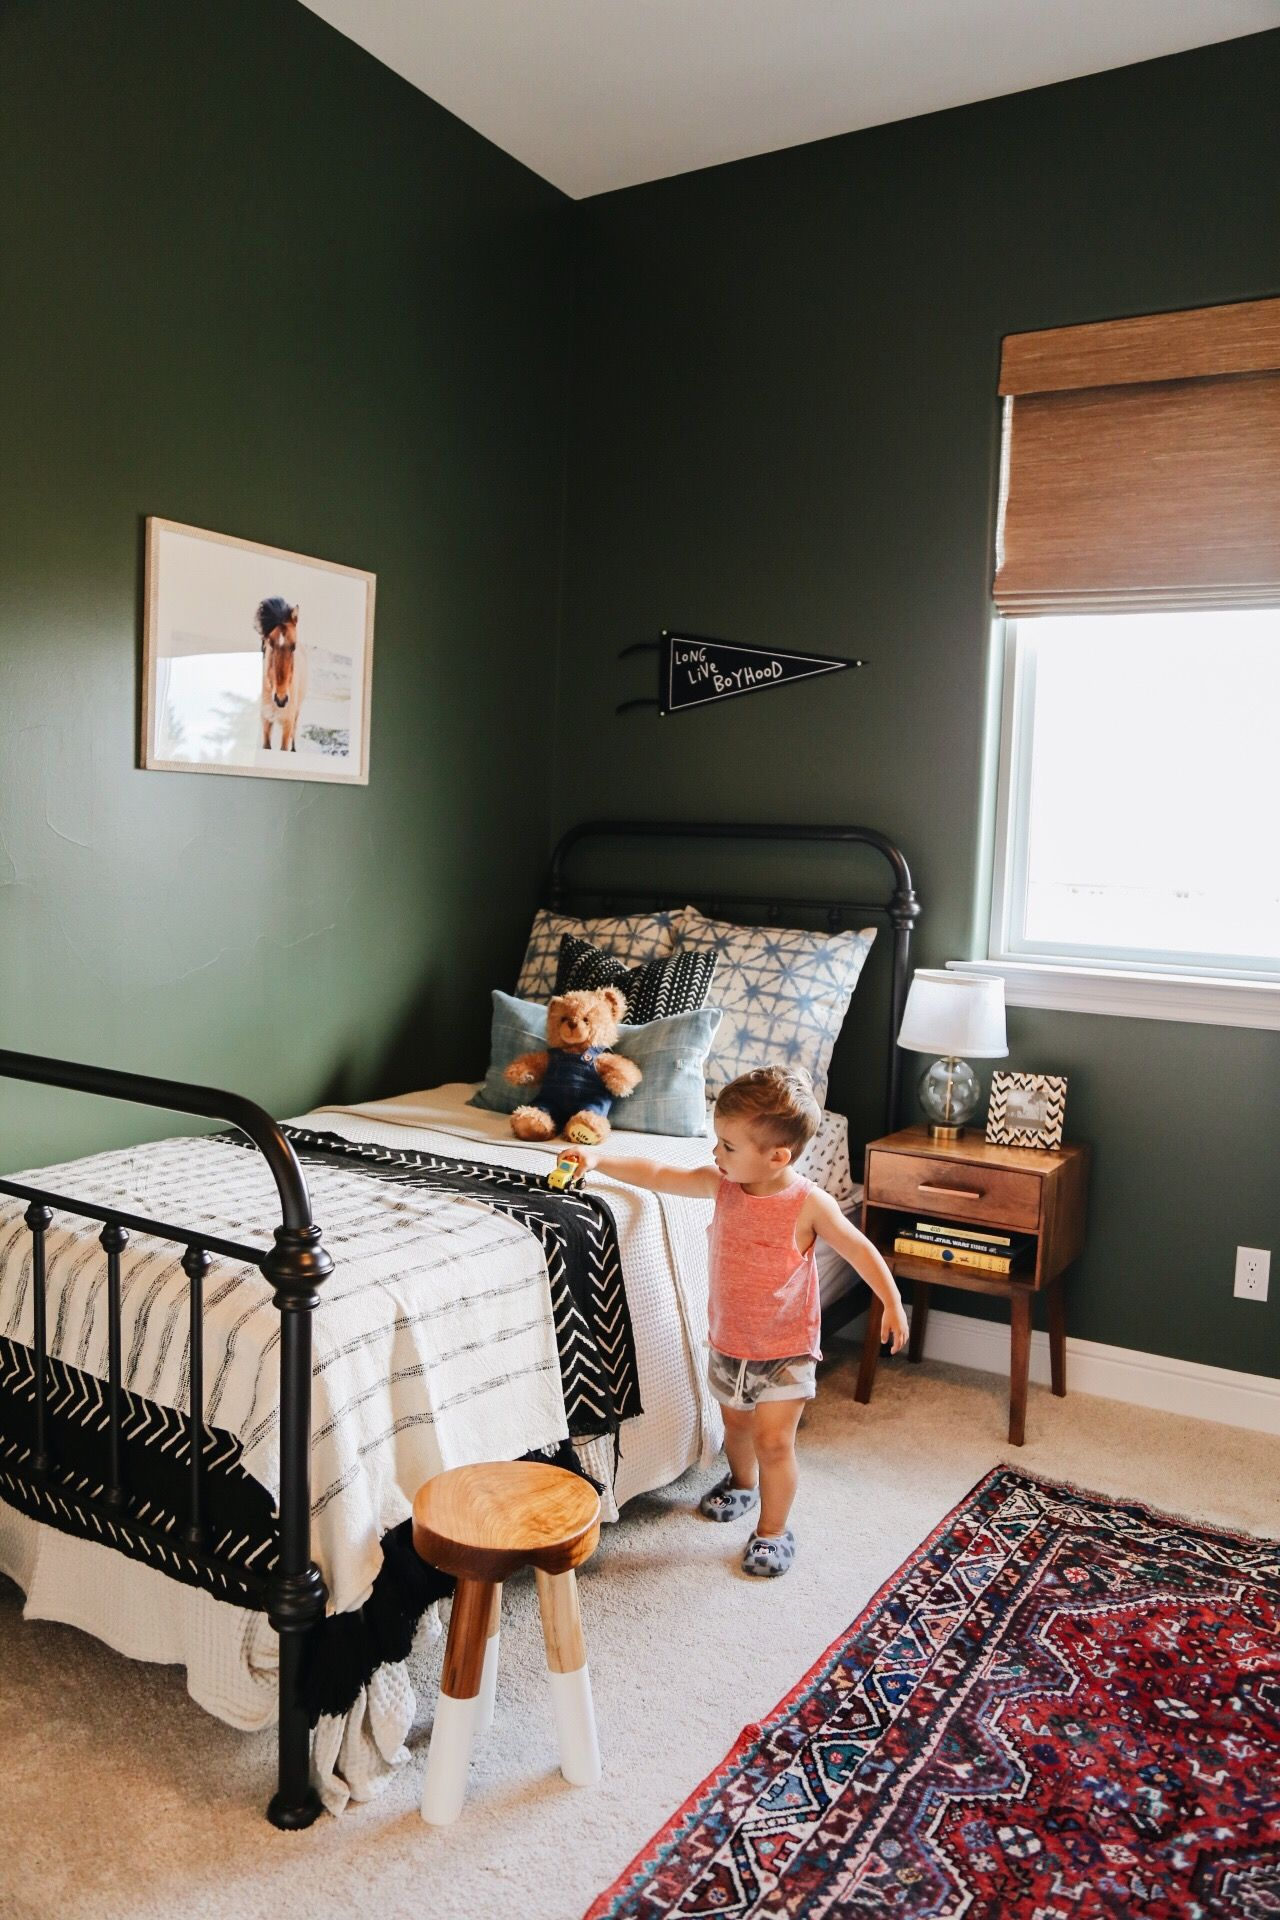 Amelia S Room Toddler Bedroom: Toddler Room, Iron Bed, Dark Green Walls, Big Boy Room